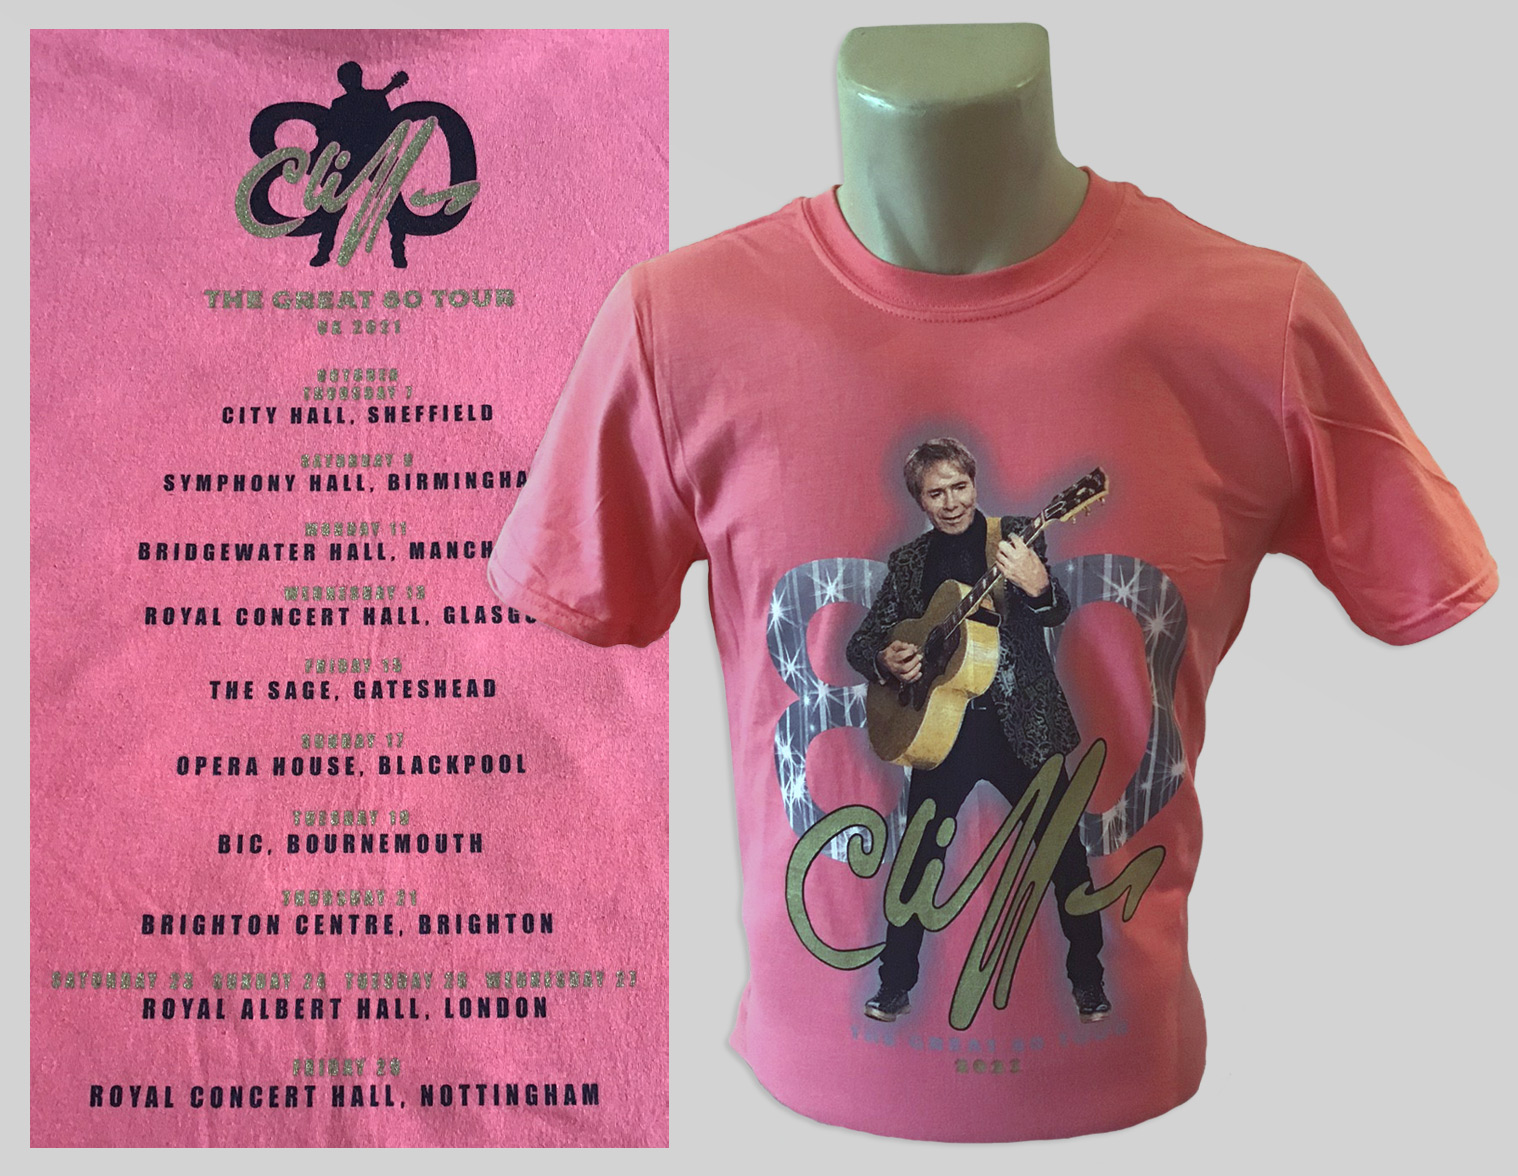 """!!NEW!! Cliff Richard """"The Great 80"""" 2021 Tour T-Shirt [CORAL SILK] (WITH OPTIONAL BACKPRINT)"""